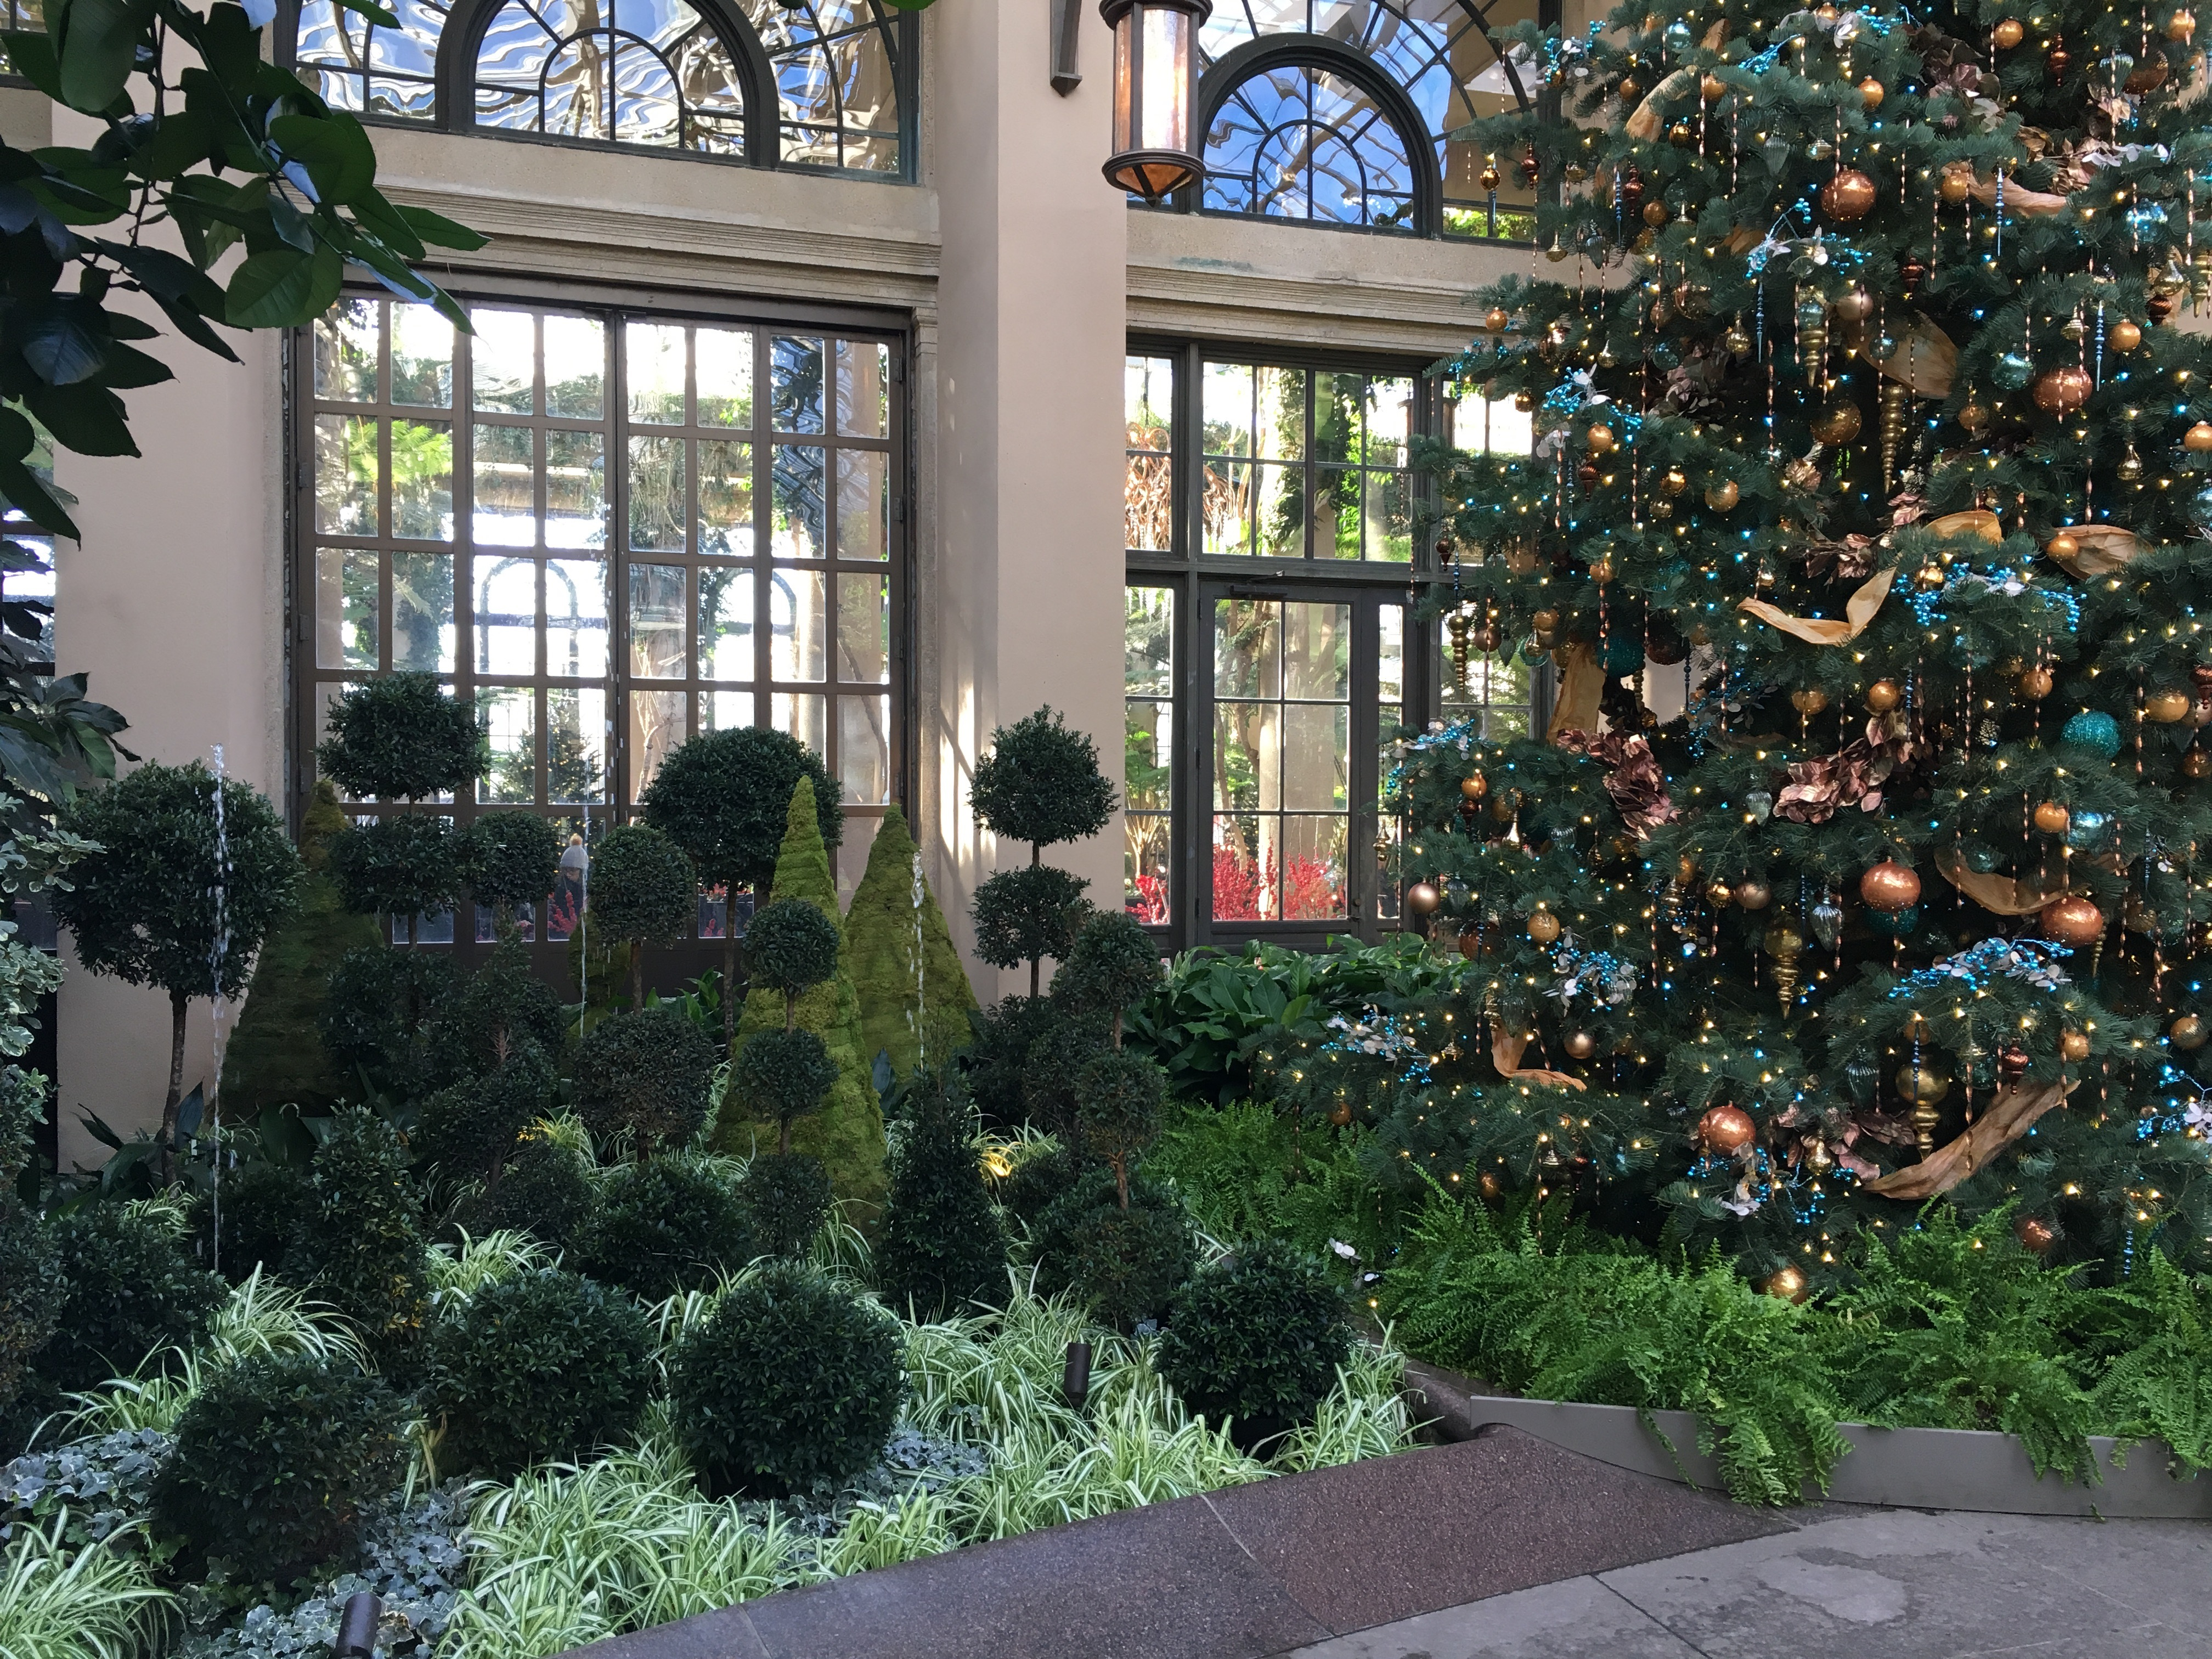 Img 6901 here by design for Longwood gardens christmas 2017